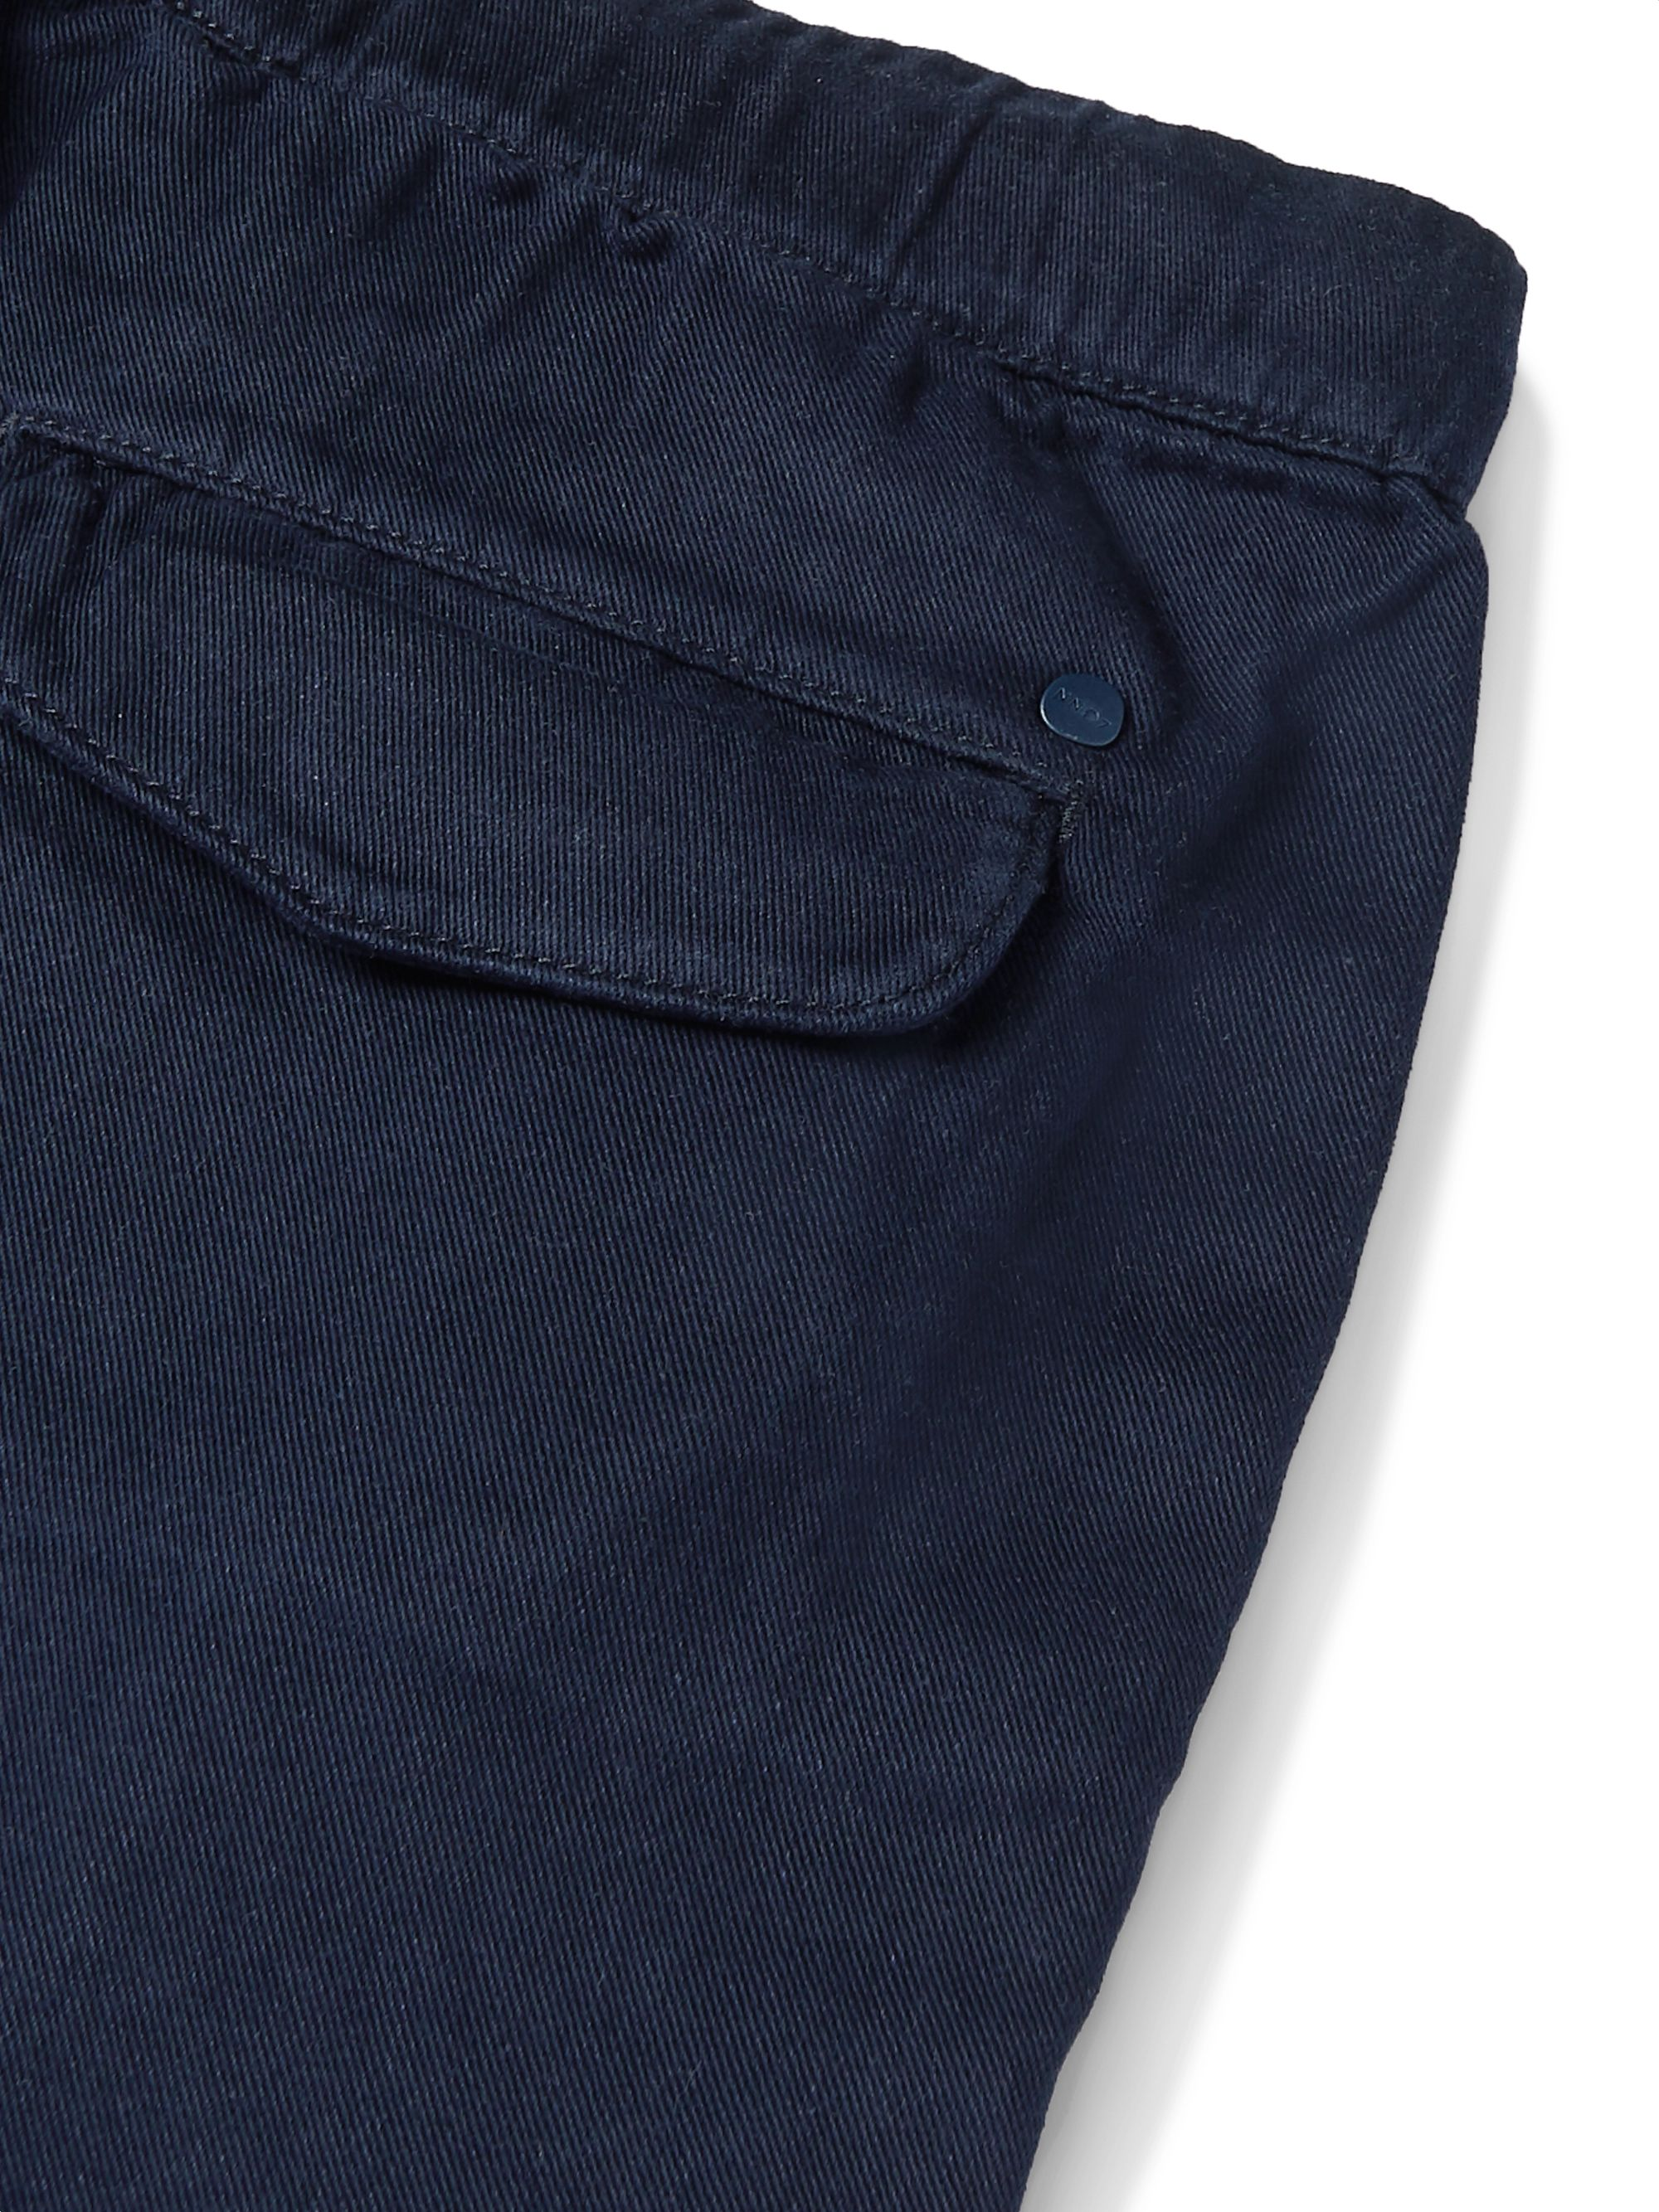 NN07 Pelle Tapered Twill Drawstring Trousers